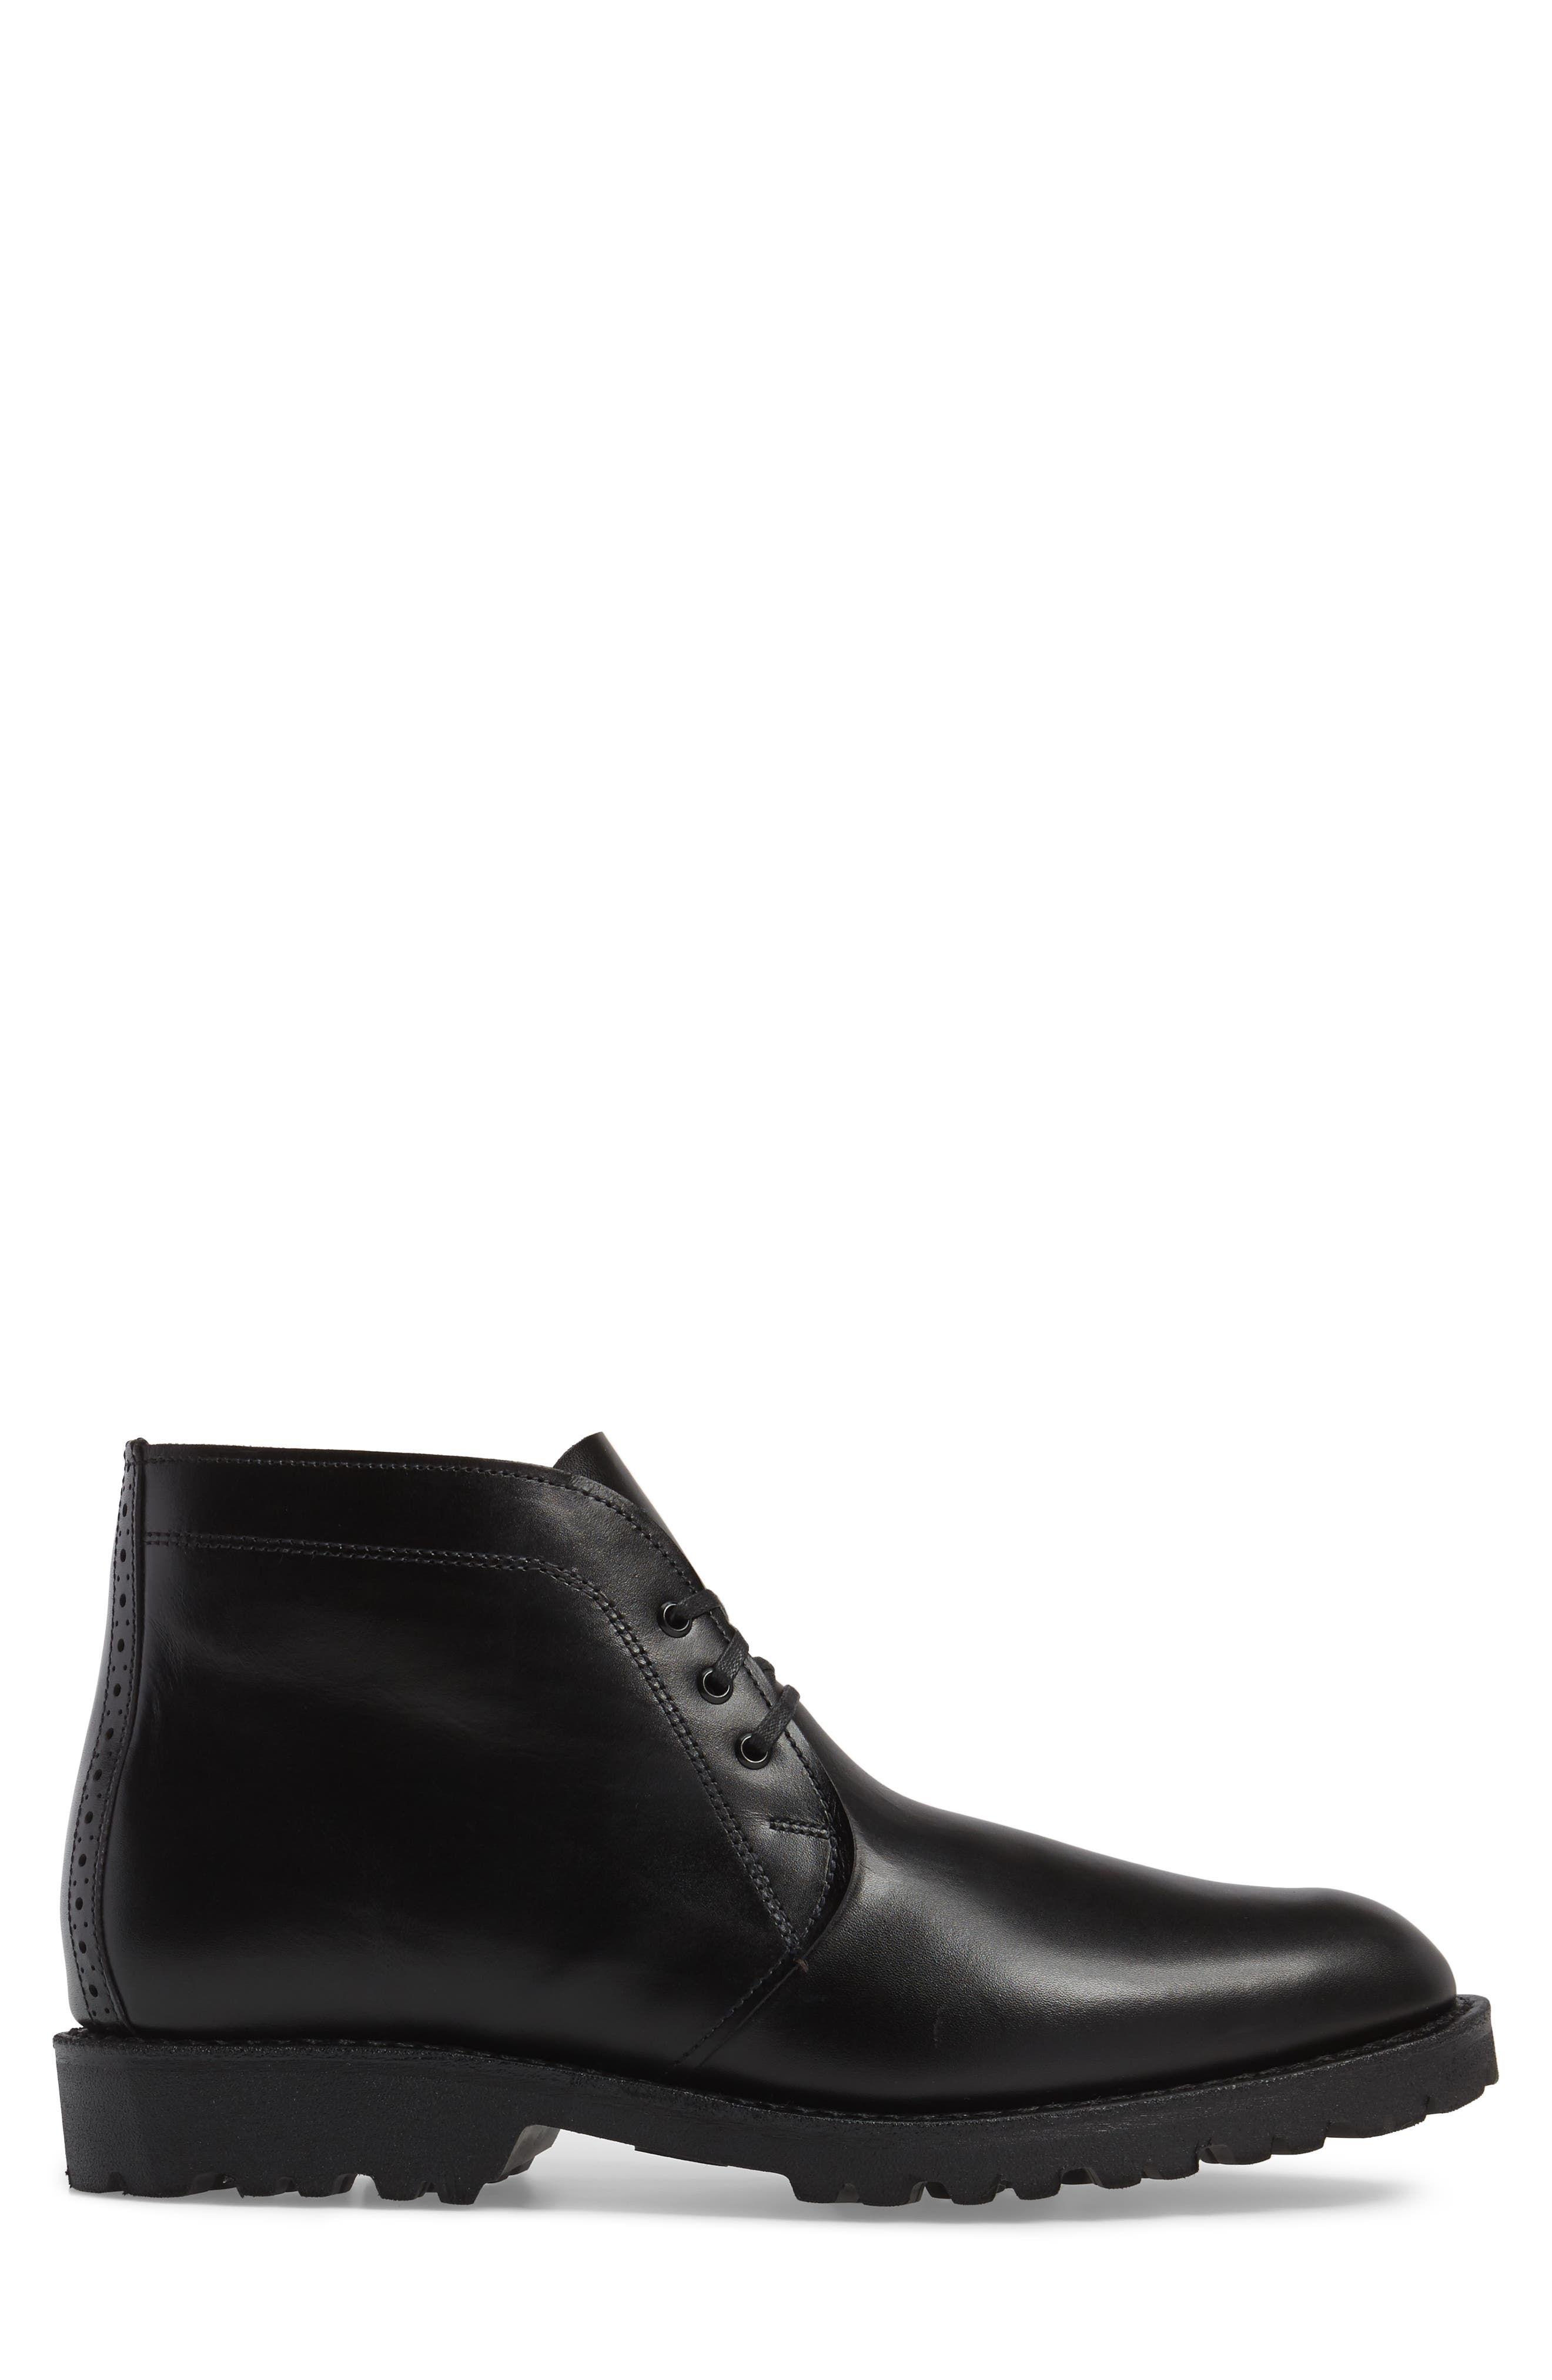 Tate Chukka Boot,                             Alternate thumbnail 3, color,                             001